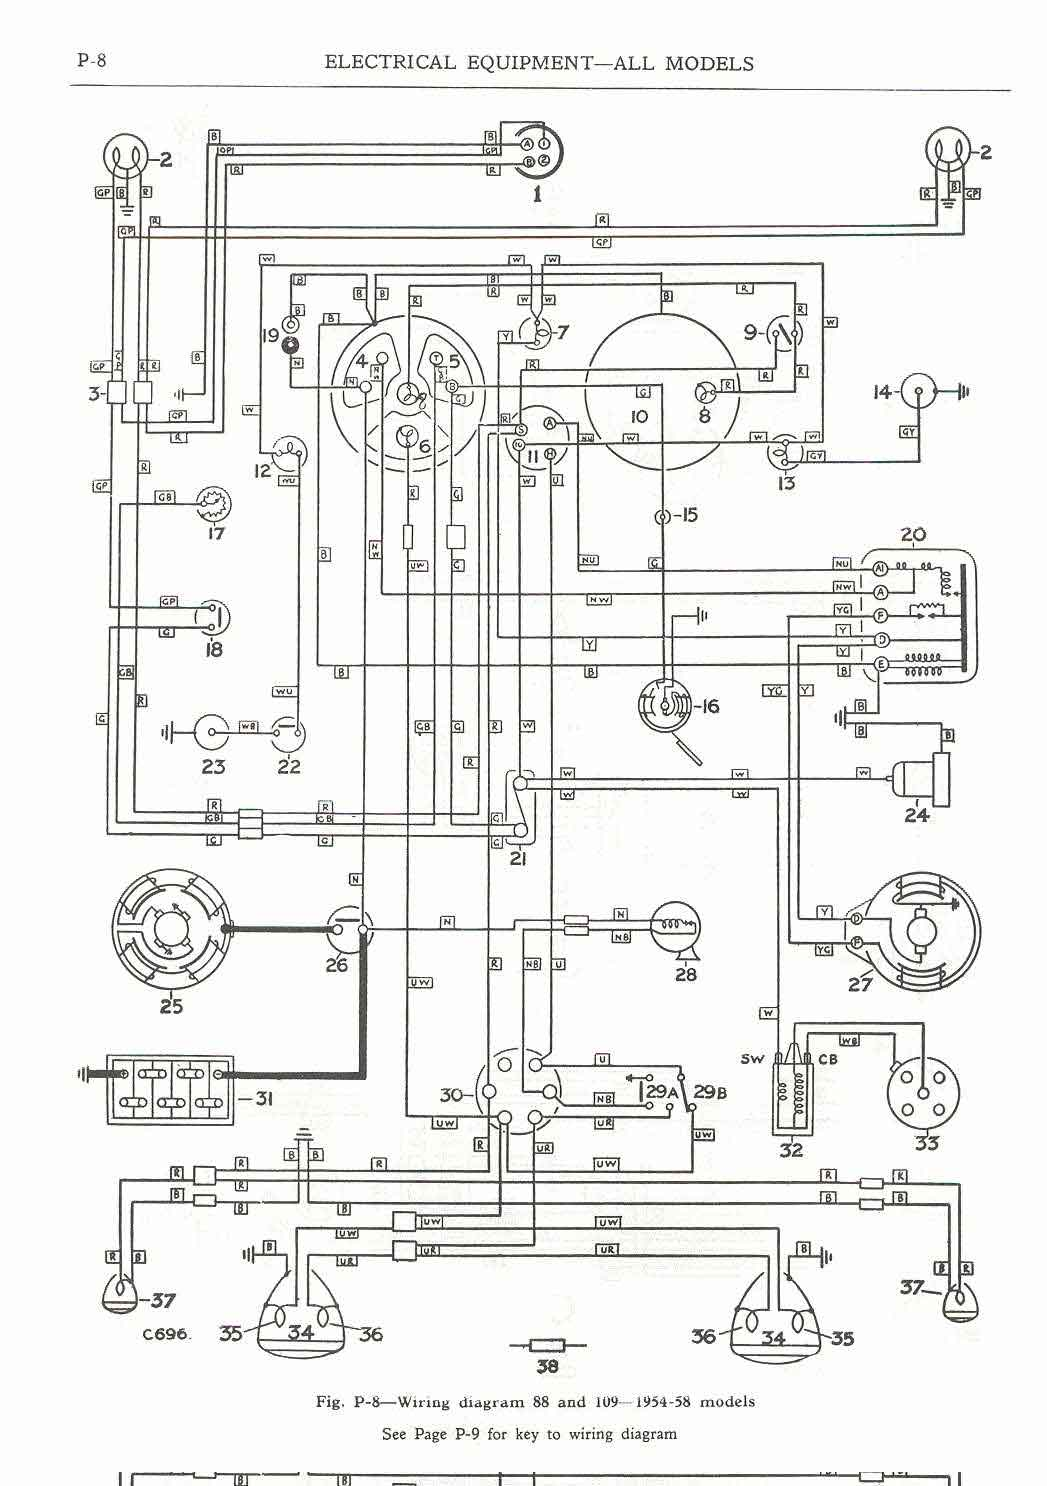 land rover faq repair maintenance series electrical wiring diagram 88 and 109 1954 58 models